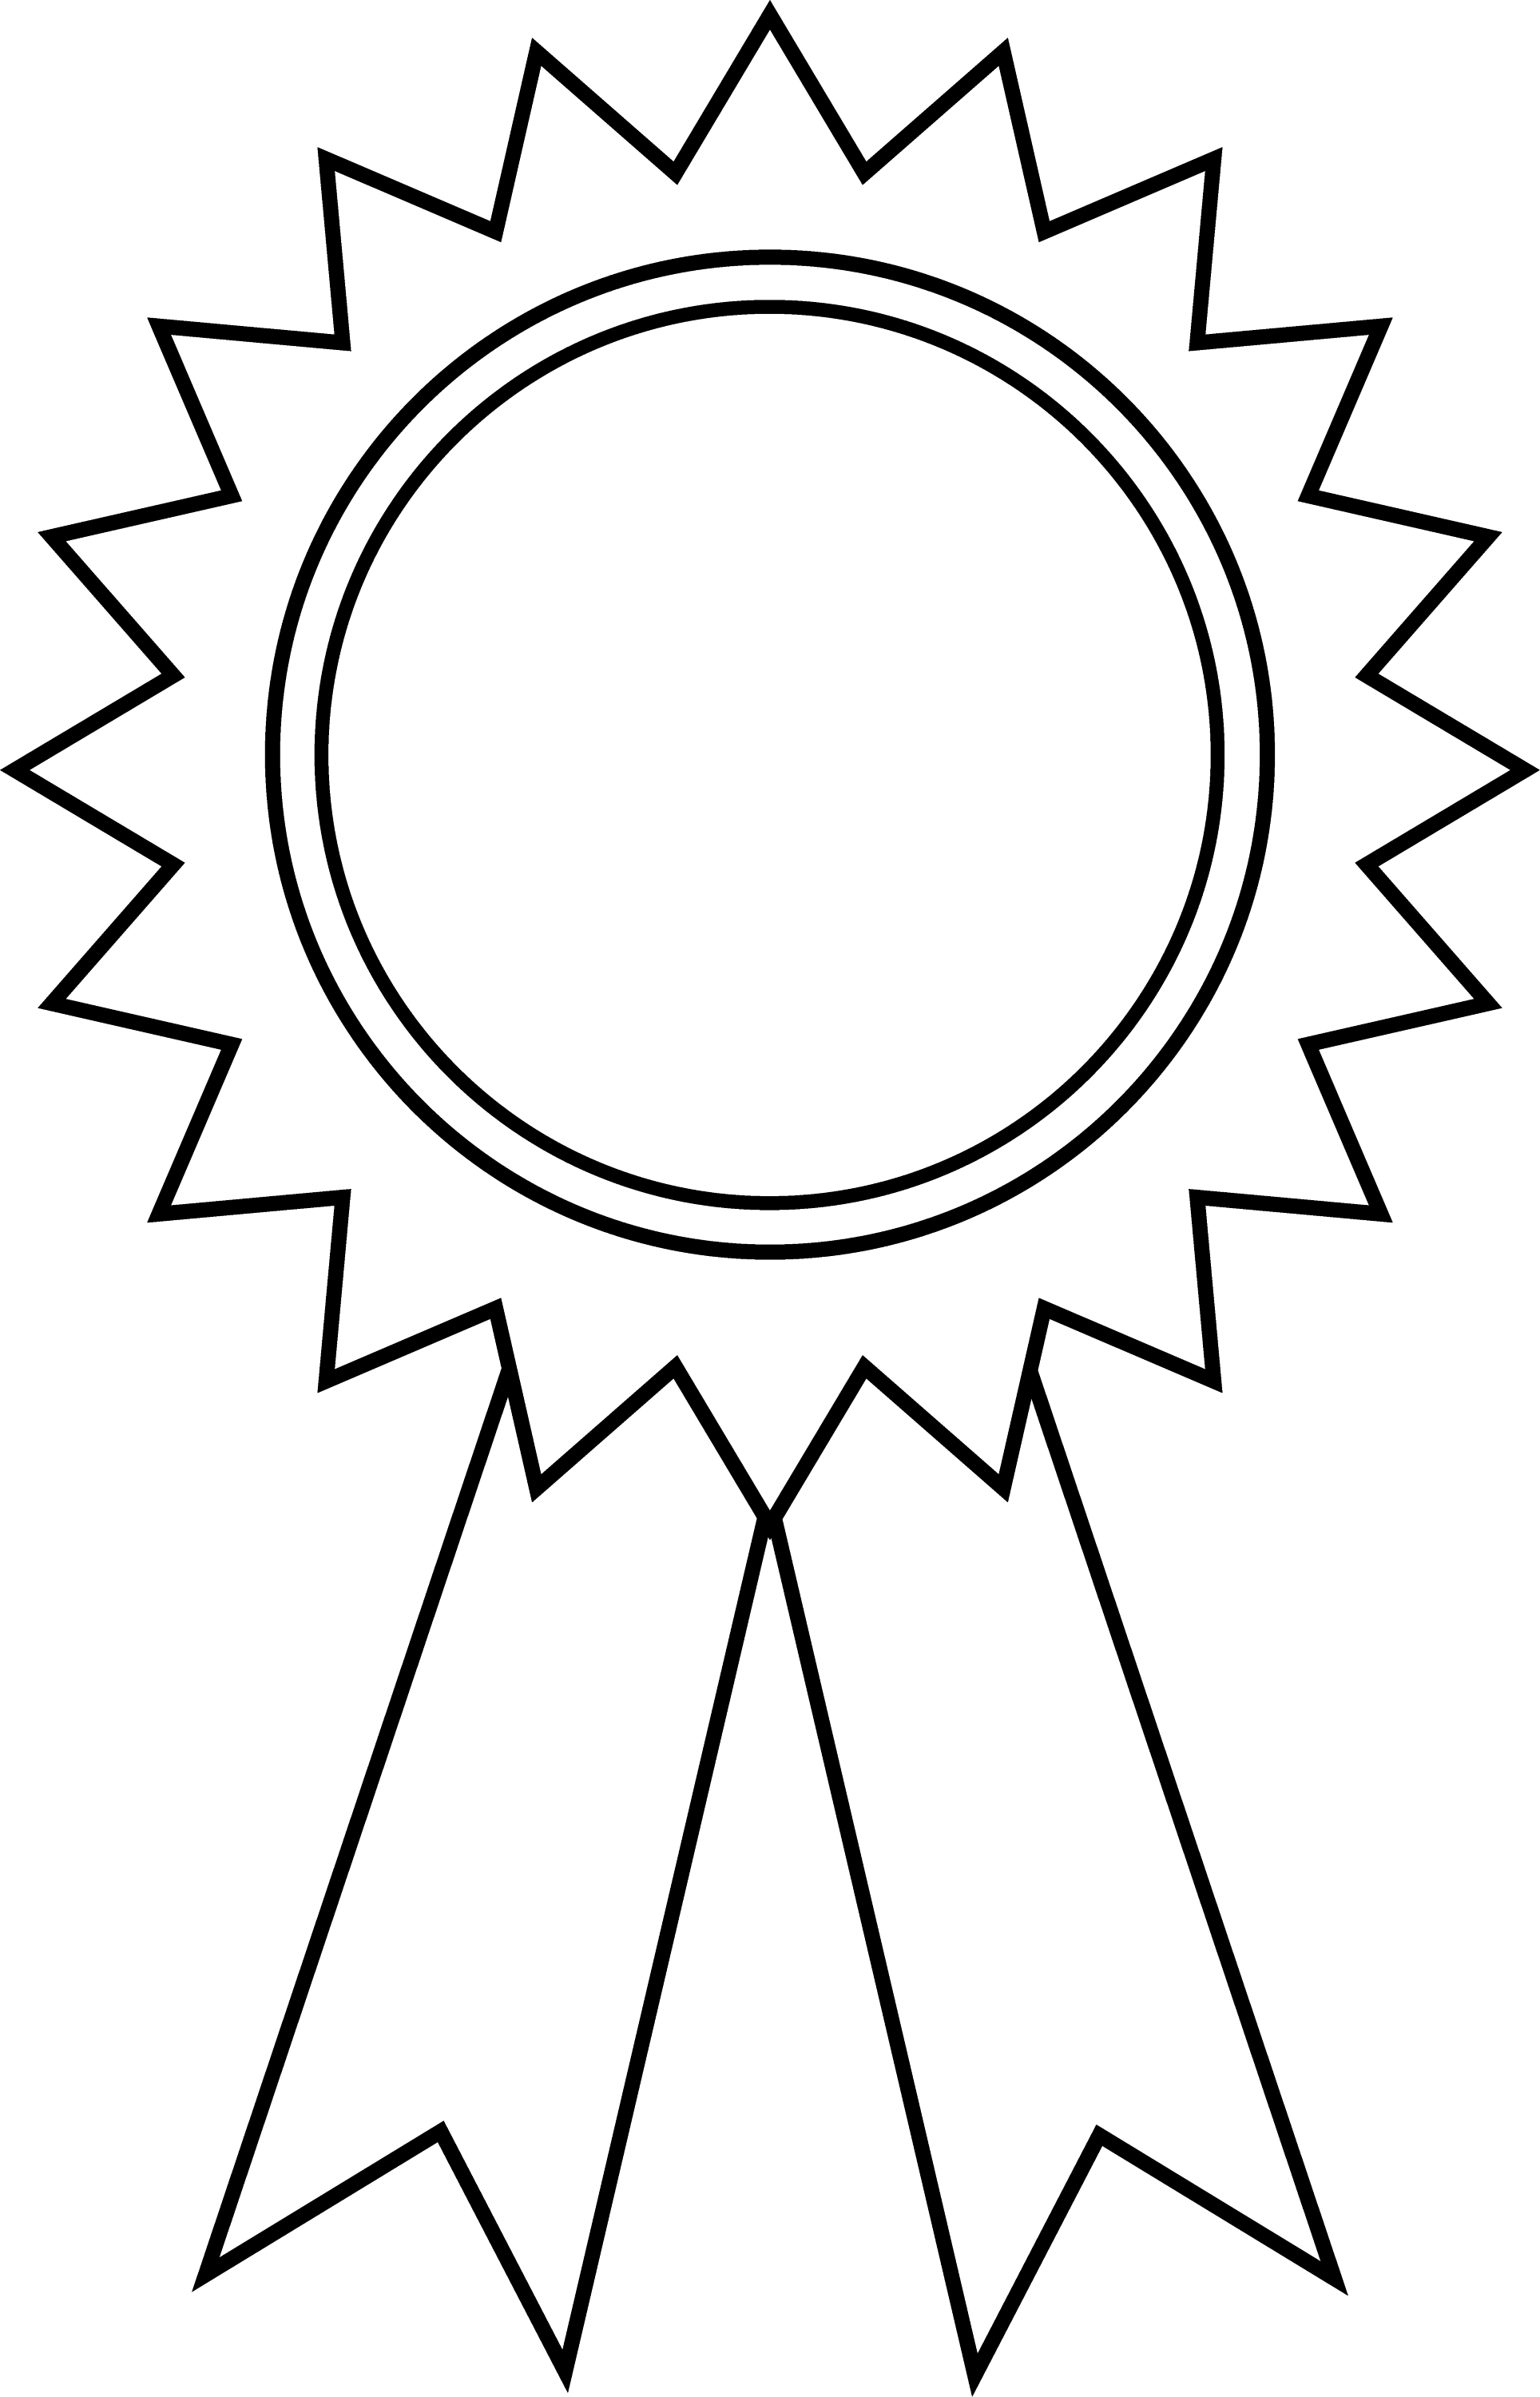 Award Ribbon Outline - Free Clip Art